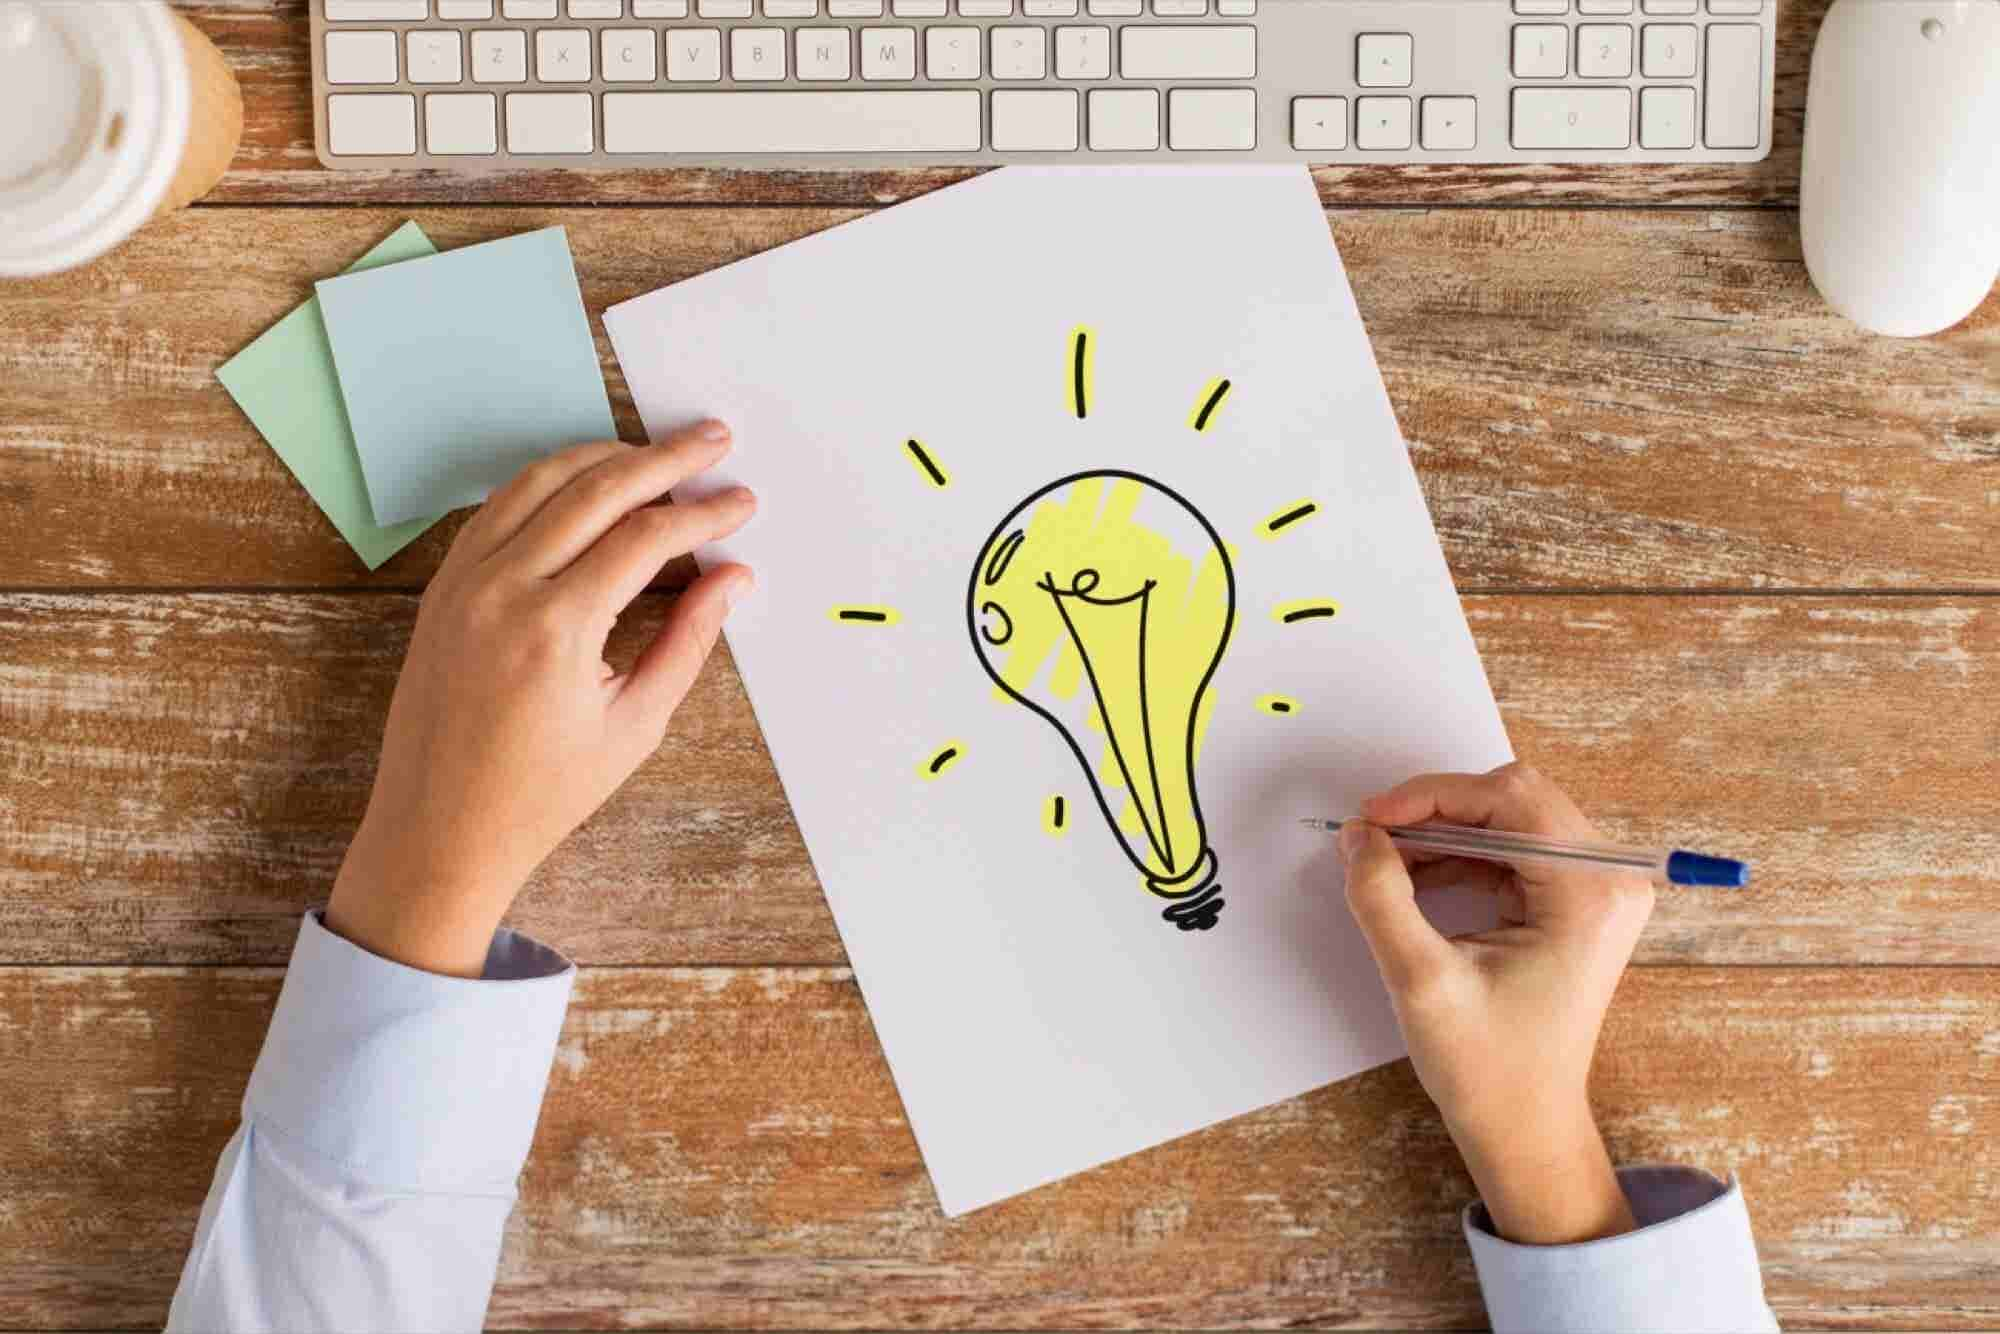 How To Turn An Idea Into A Successful Business